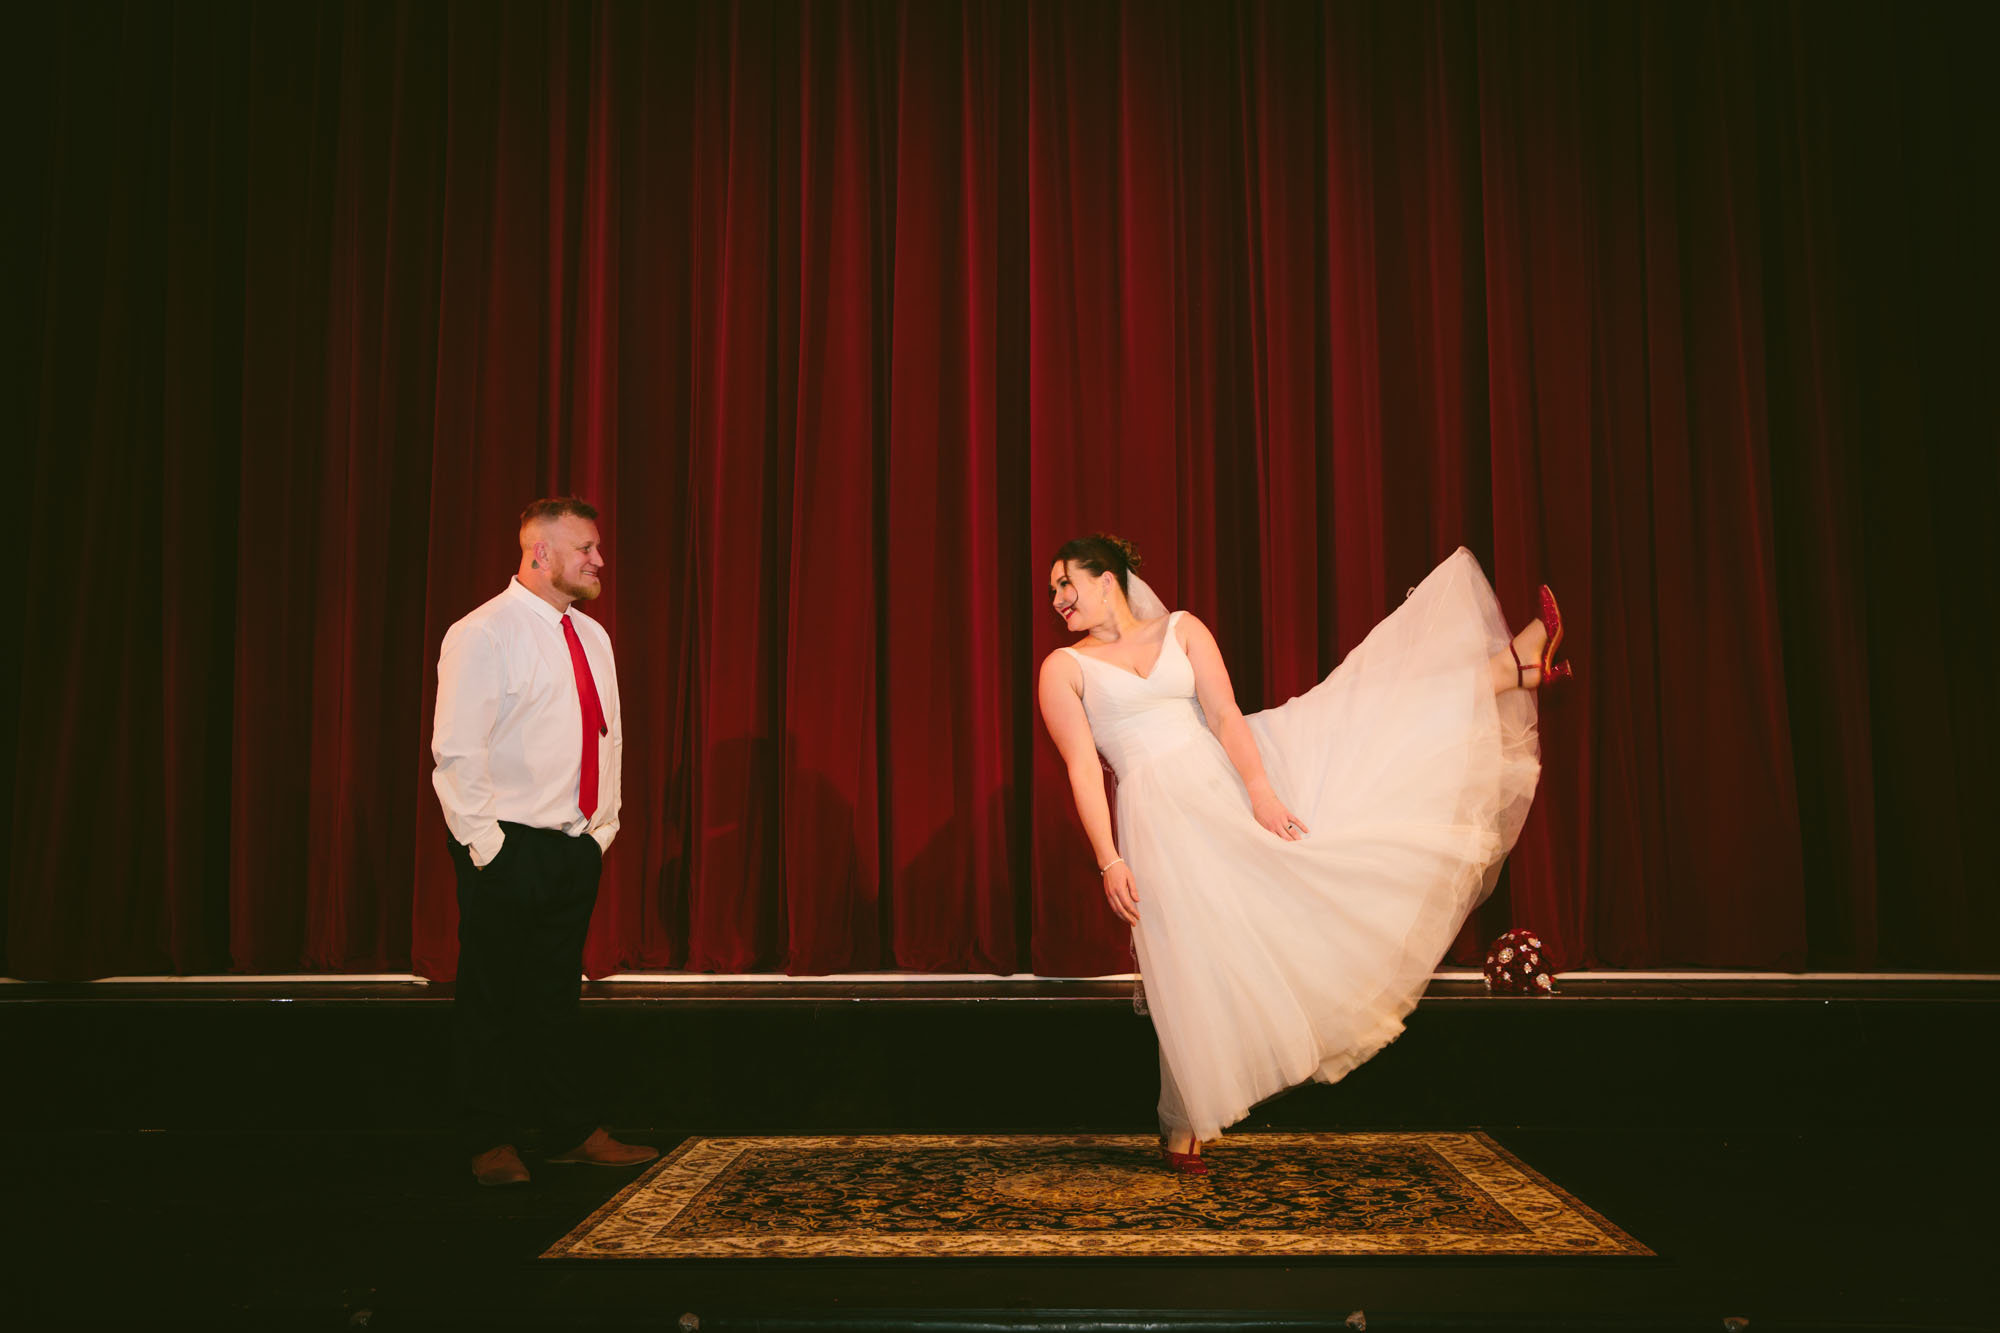 KelliMatt_PrincessTheatreBrisbaneWedding_AnnaOsetroffPhotographer_Website-91